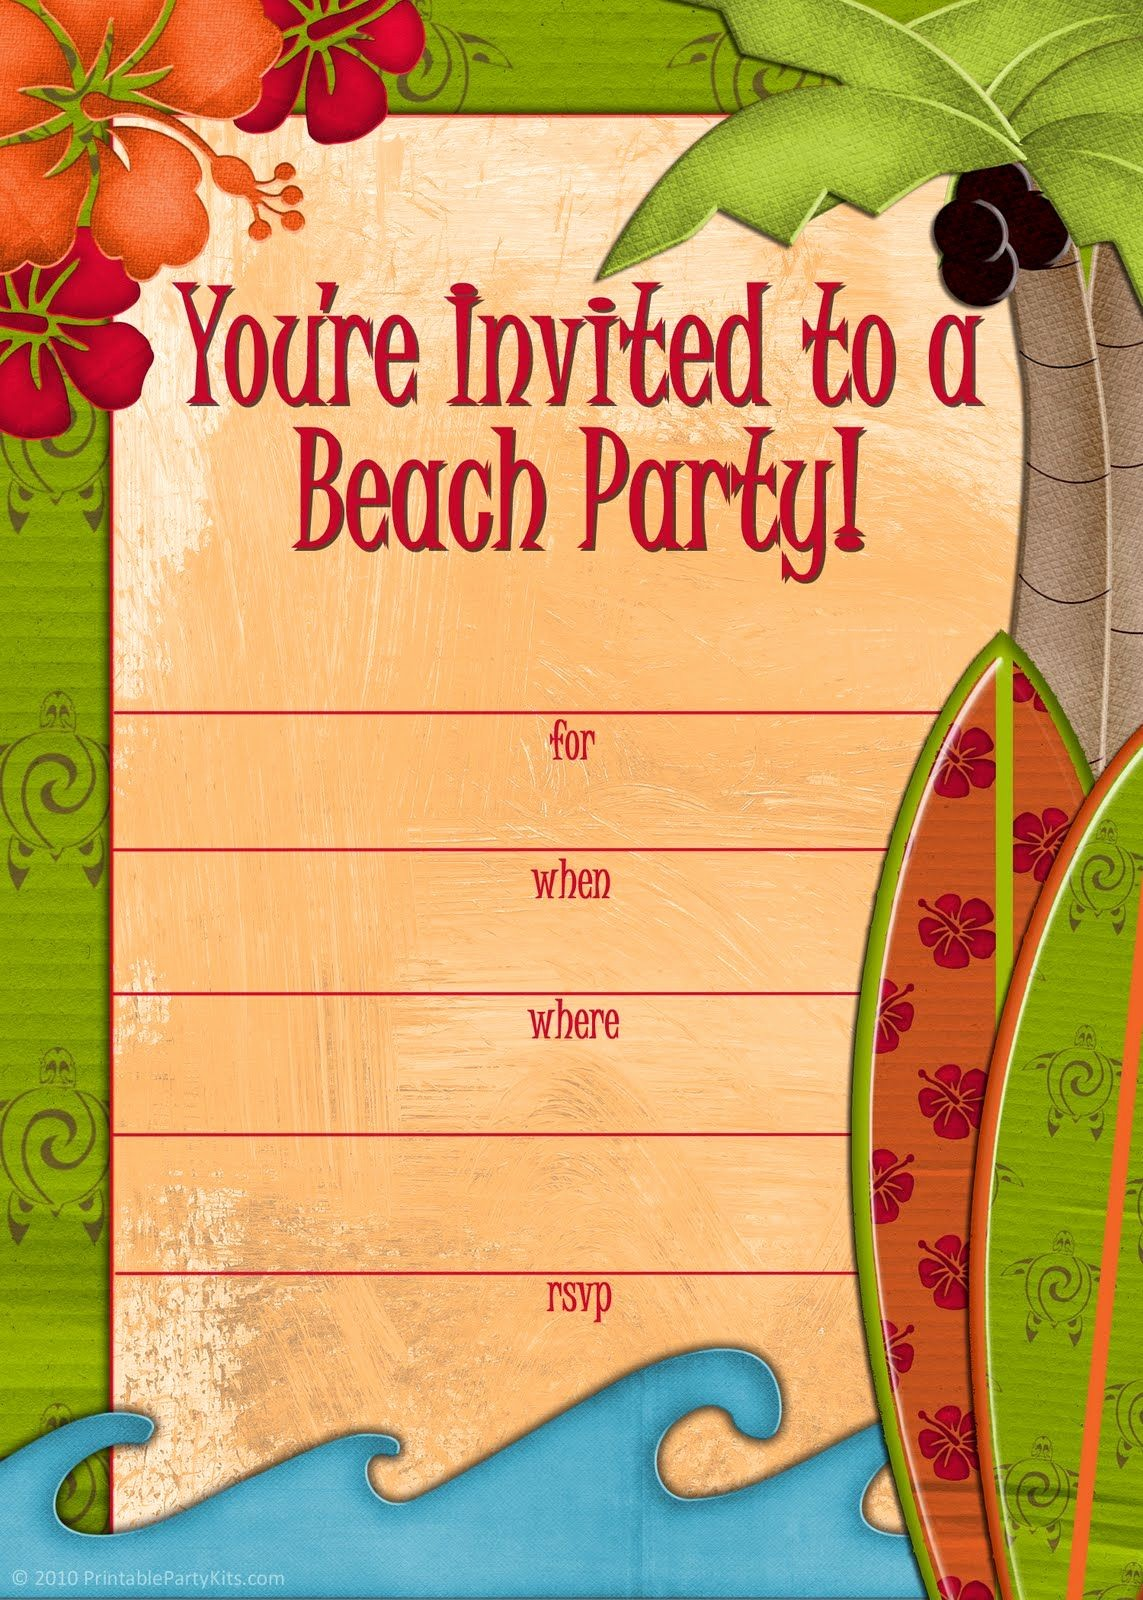 Luau Party Invitations Templates Free Unique Free Printable Beach Party Invitations From